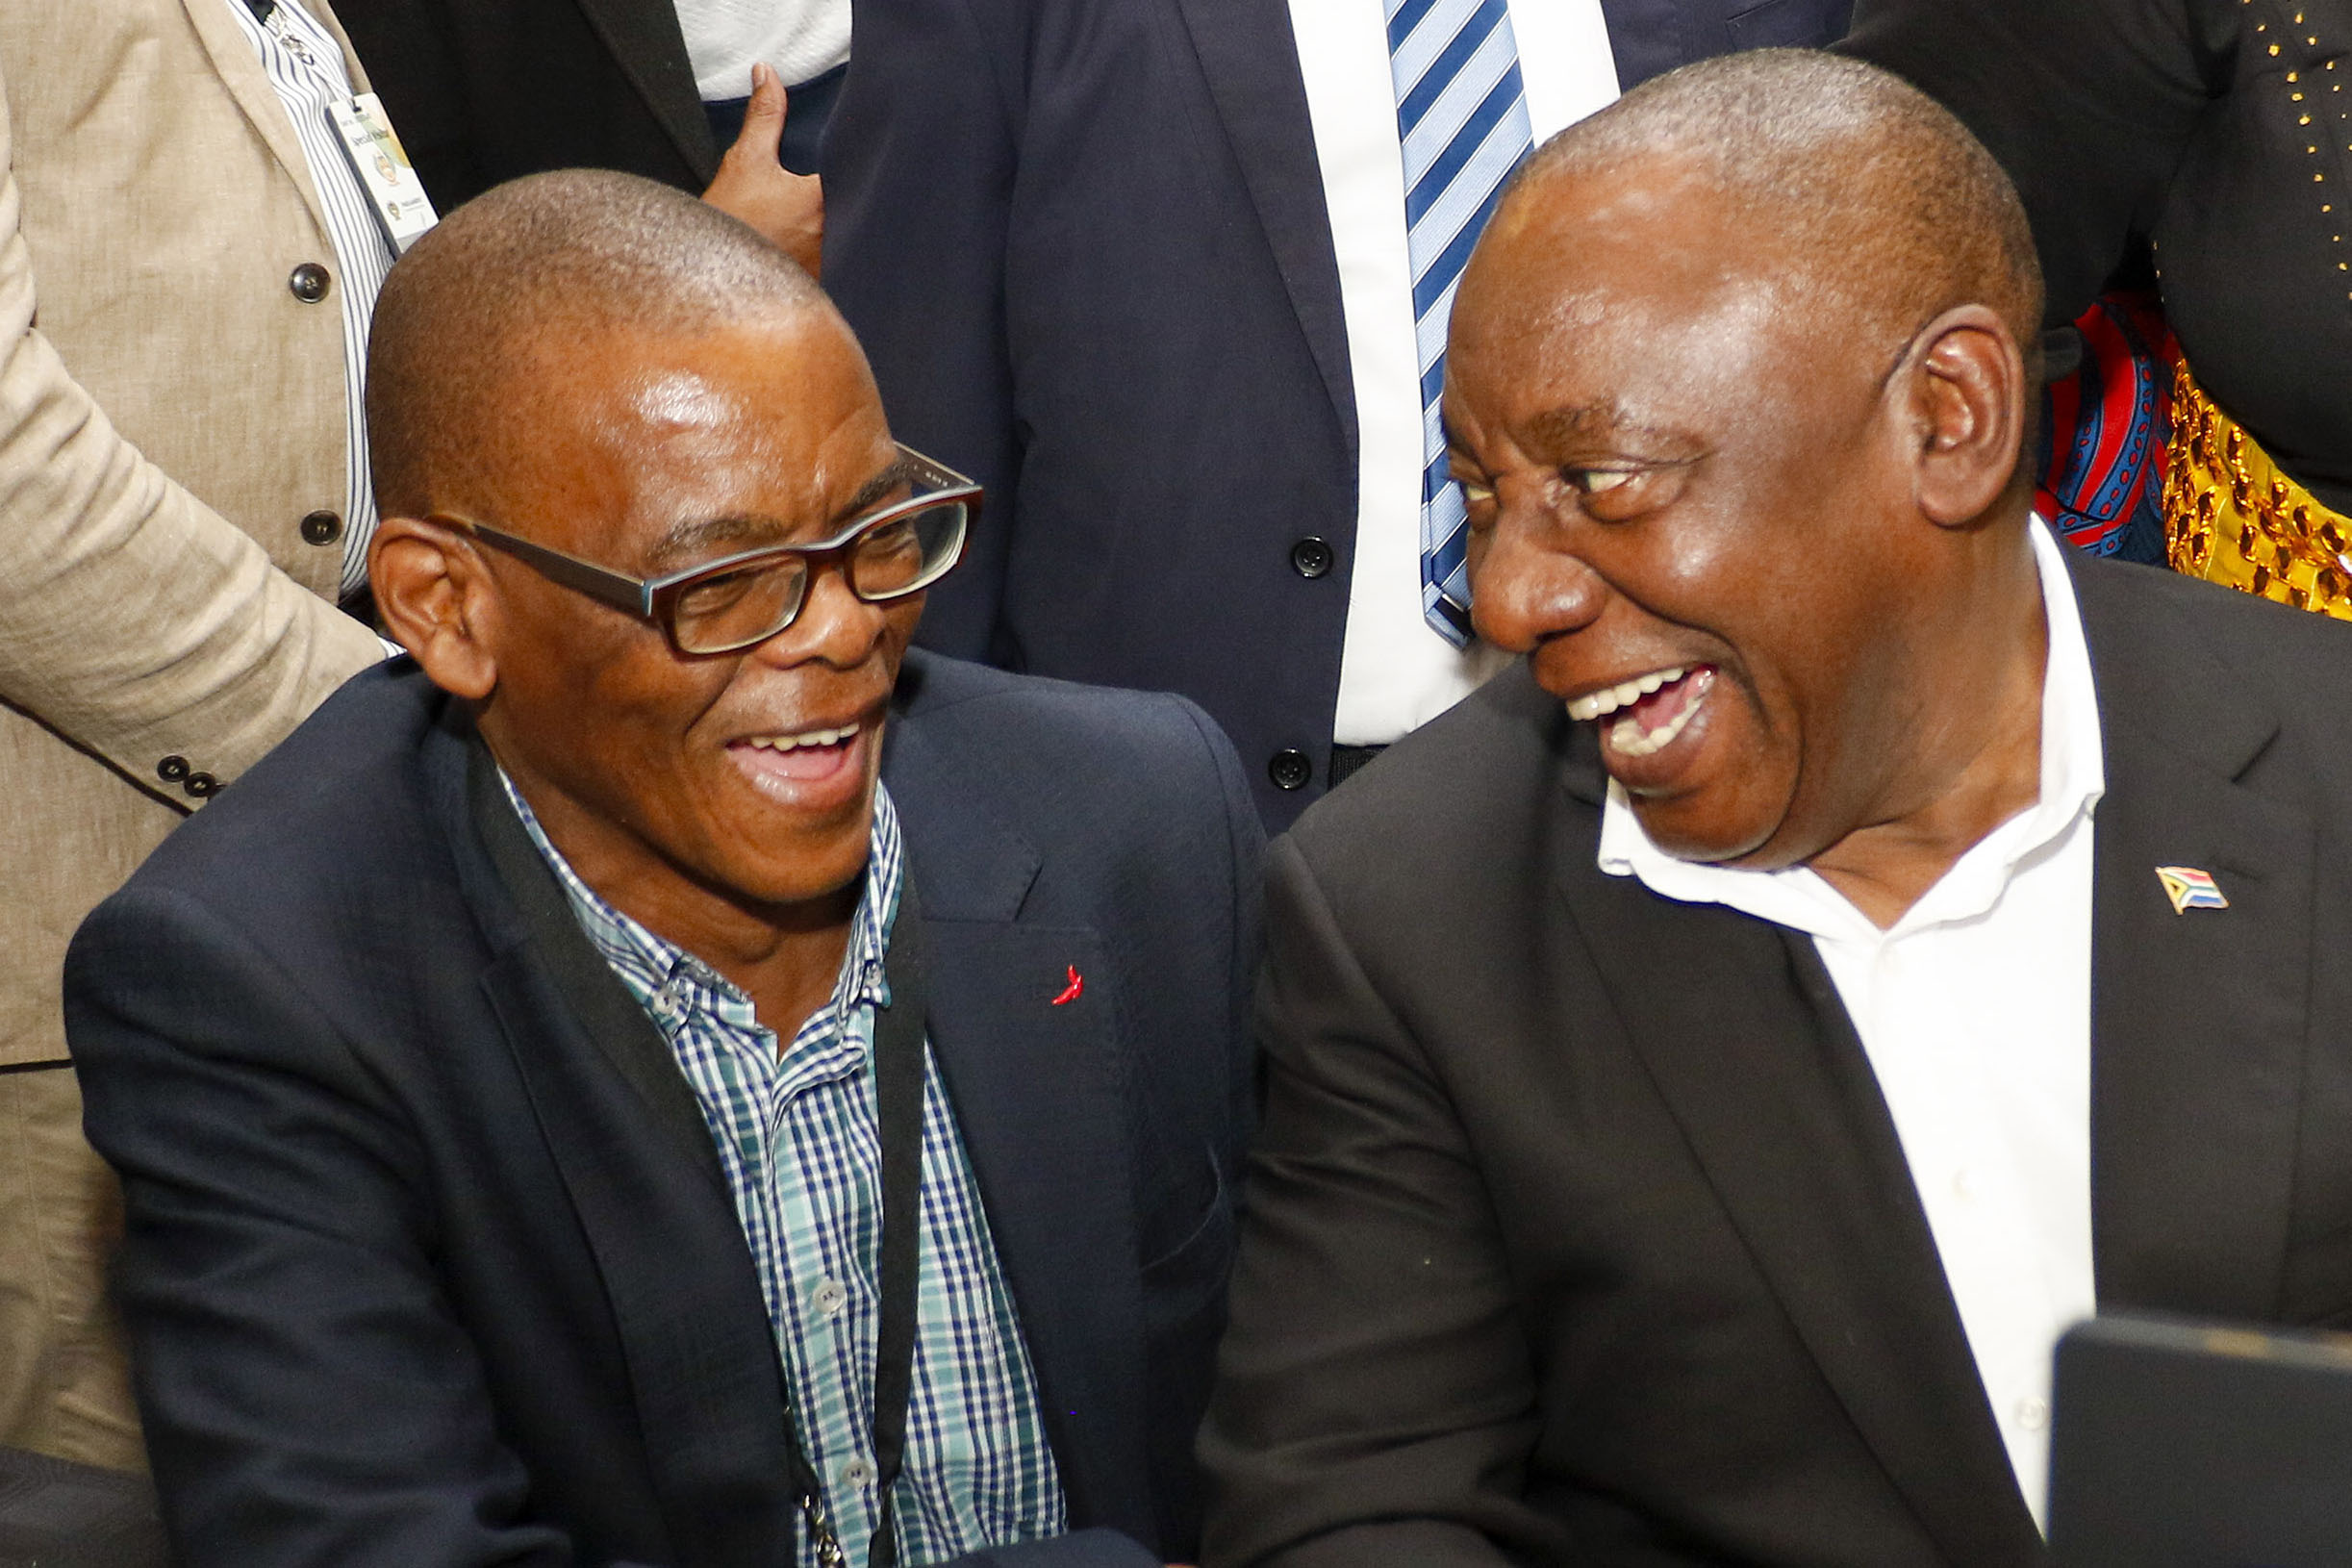 21 May 2019: ANC secretary-general Ace Magashule and ANC president Cyril Ramaphosa during the registration of new members of Parliament before the first sitting of the National Assembly. (Photograph by Gallo Images/Netwerk24/Adrian de Kock)